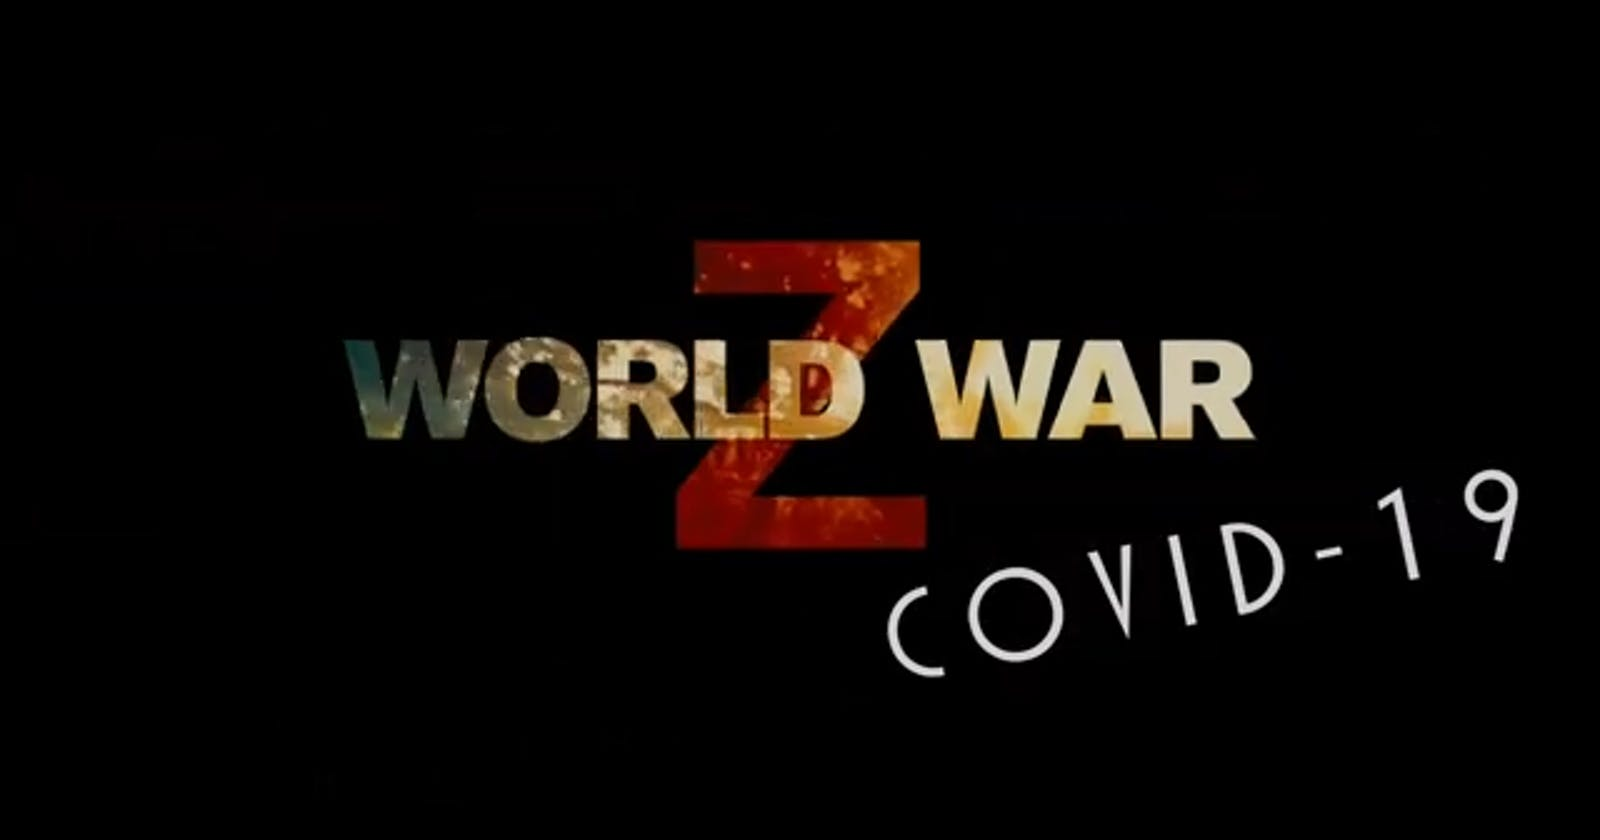 WW II and WW Covid: Diffs and Parallels